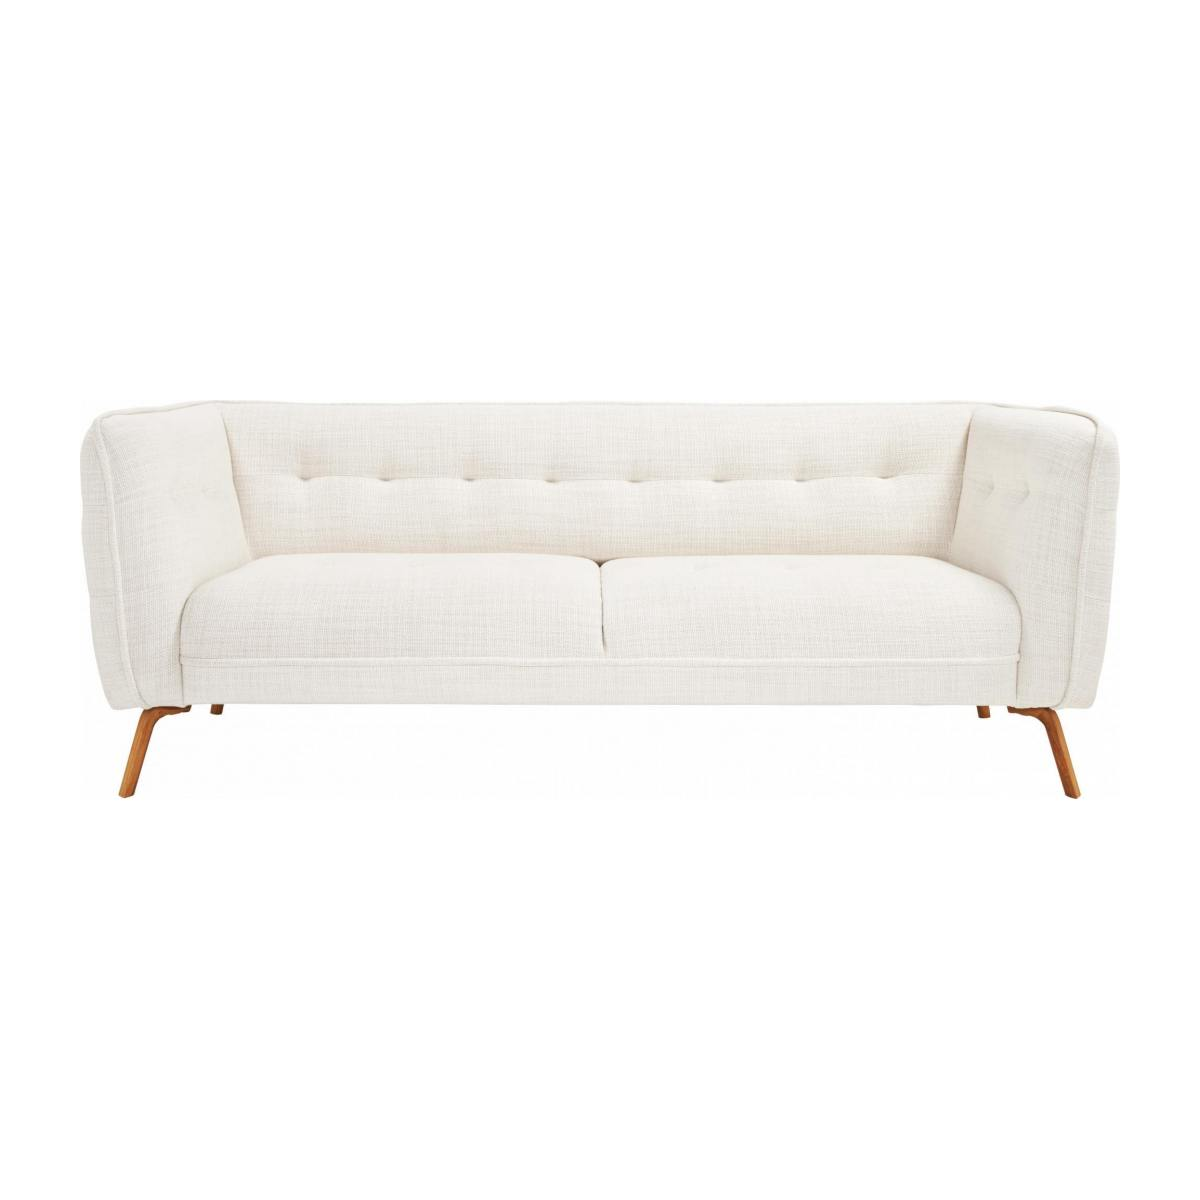 3 seater sofa in Fasoli fabric, snow white and oak legs n°1